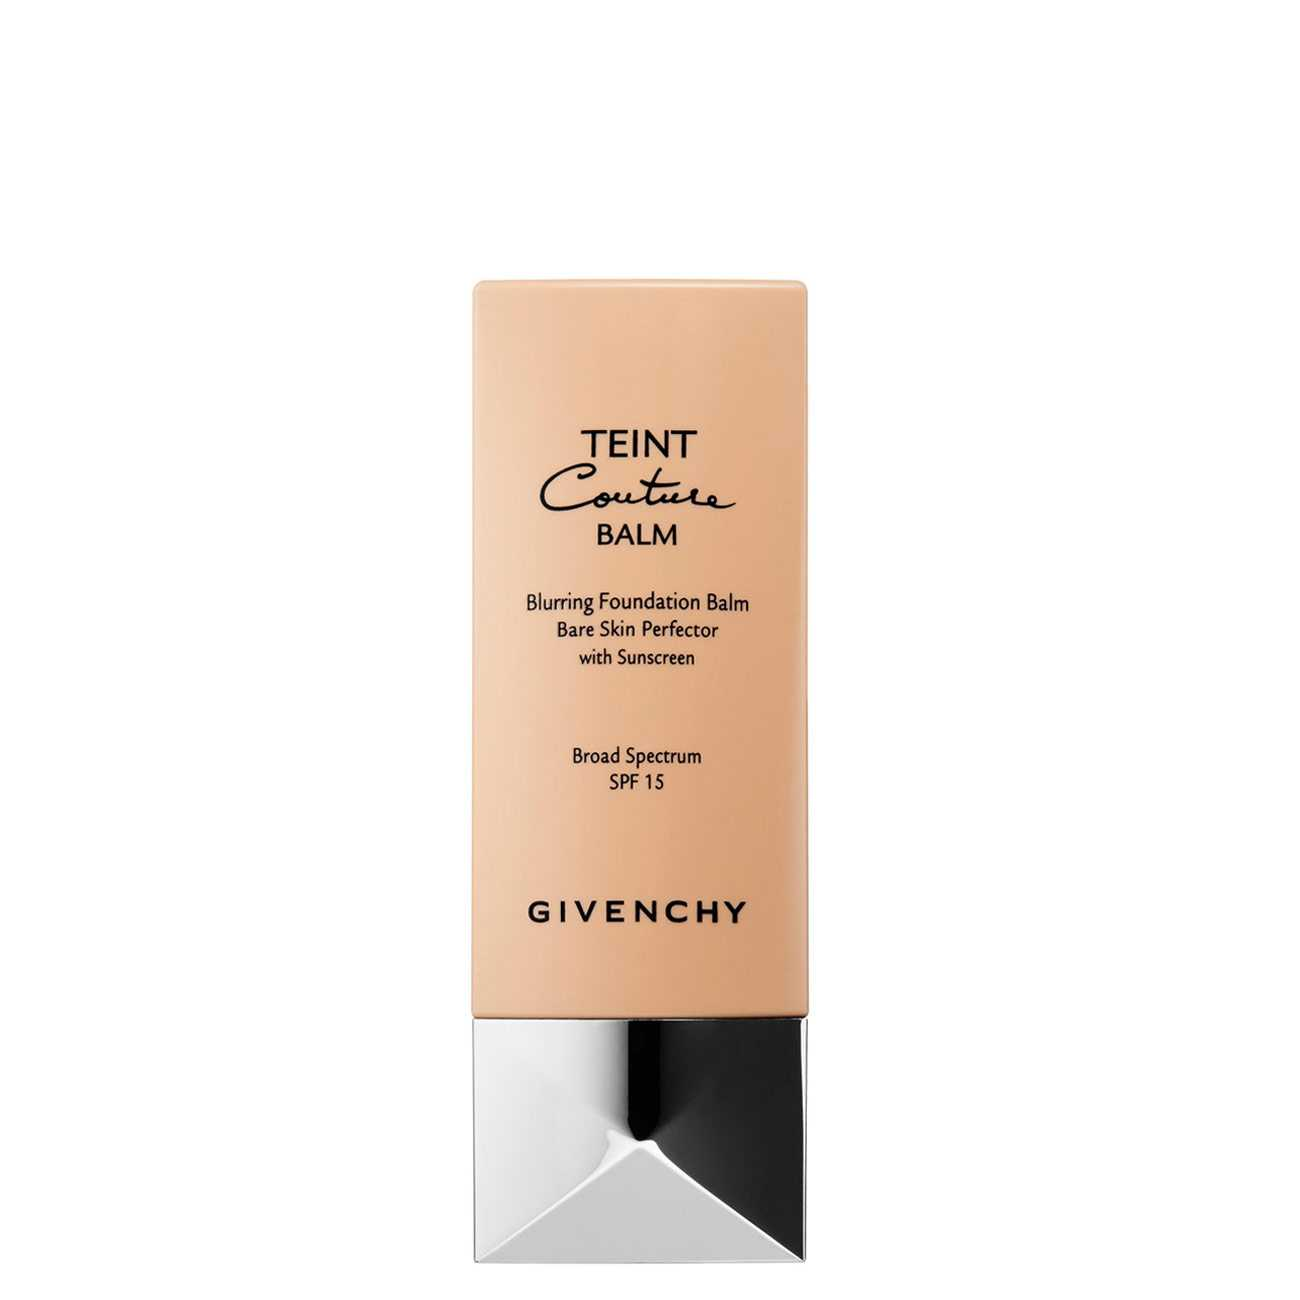 Teint Couture Balm 30 Ml Nude Ginger N7 Givenchy imagine 2021 bestvalue.eu